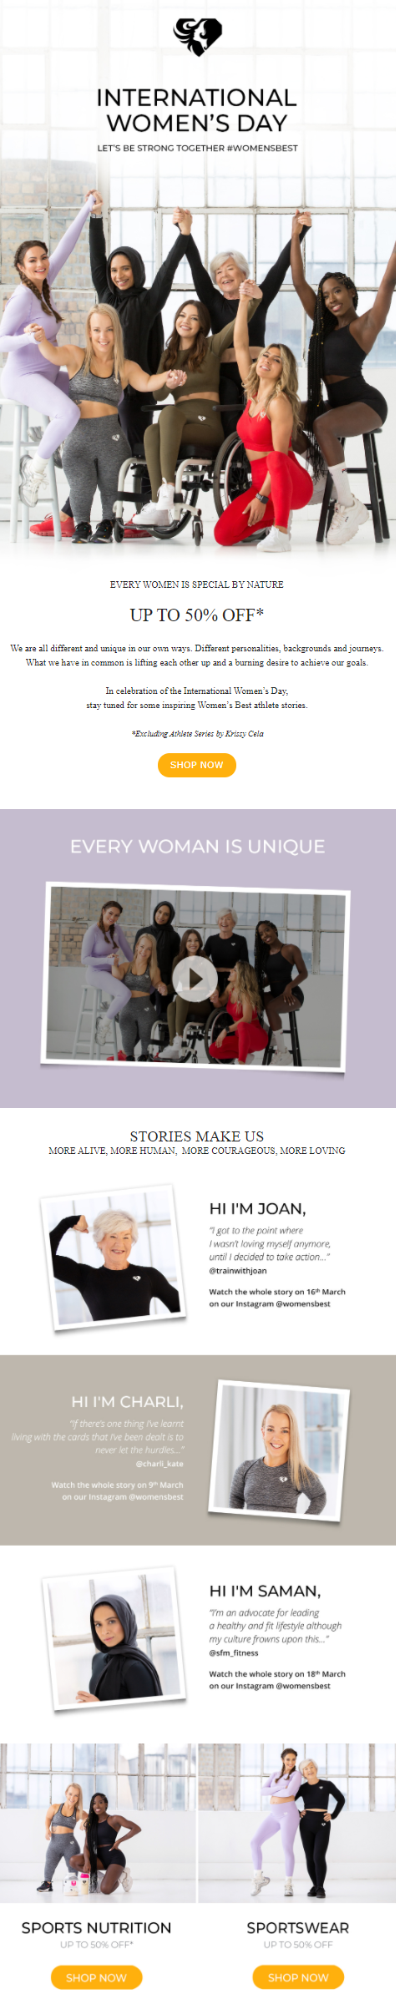 Women's Day email by Women's Best